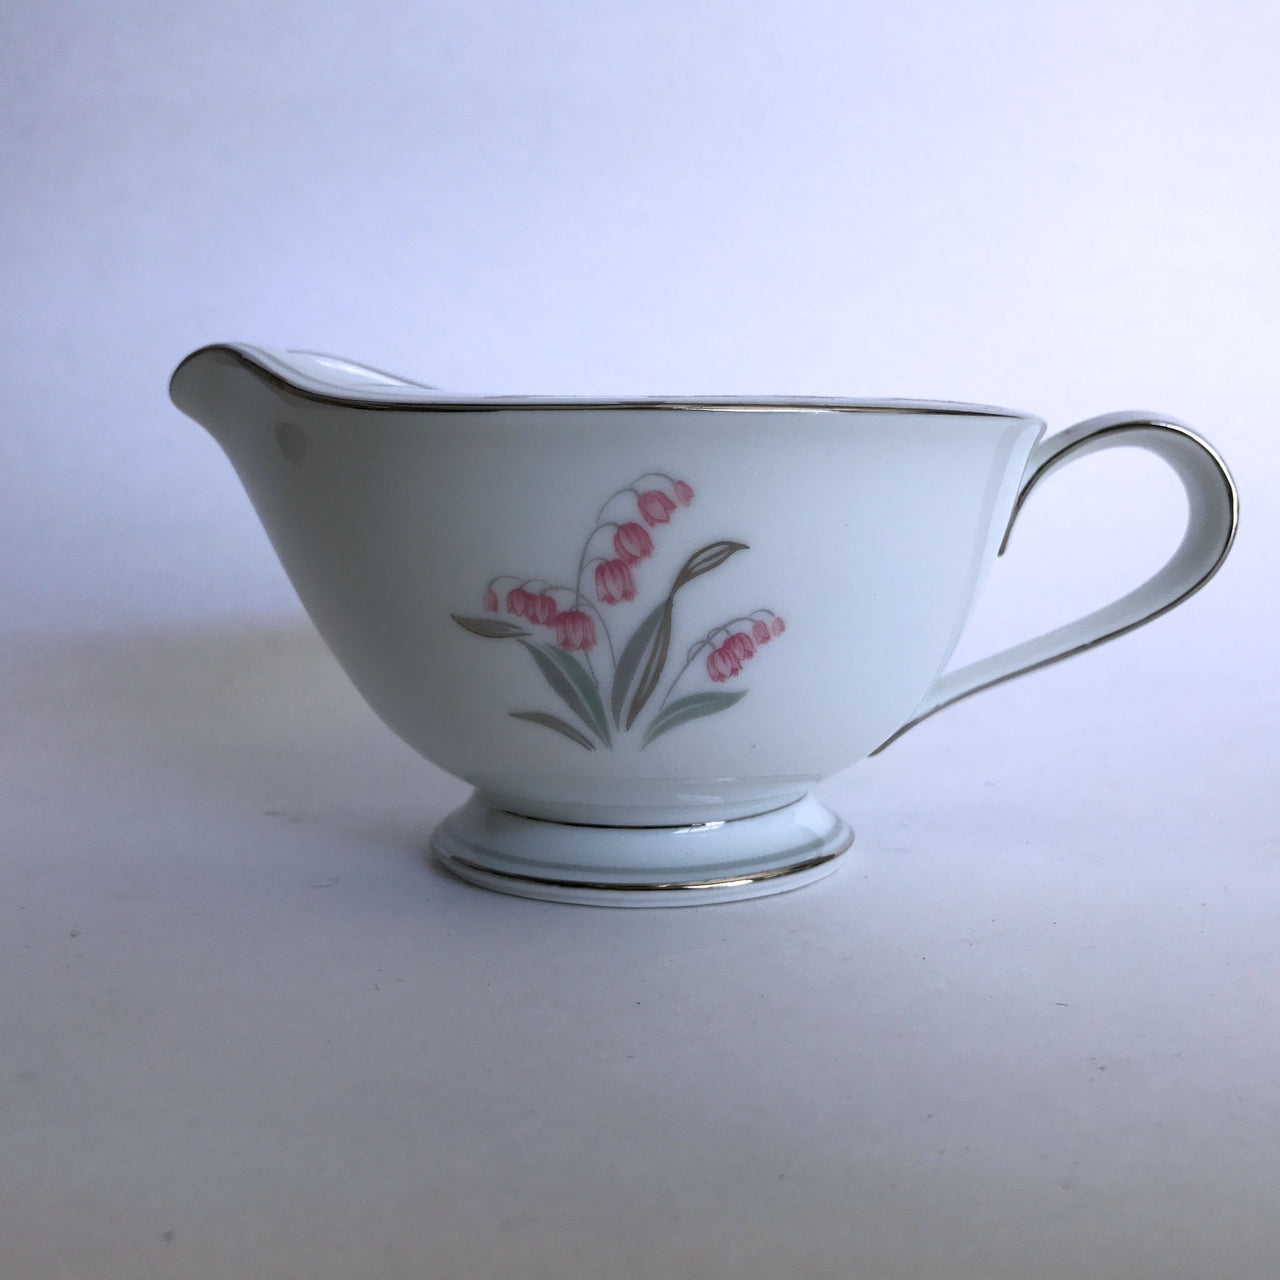 Vintage Noritake Crest 5421 Cream Pitcher Creamer Pink Flower Green Silver Stems